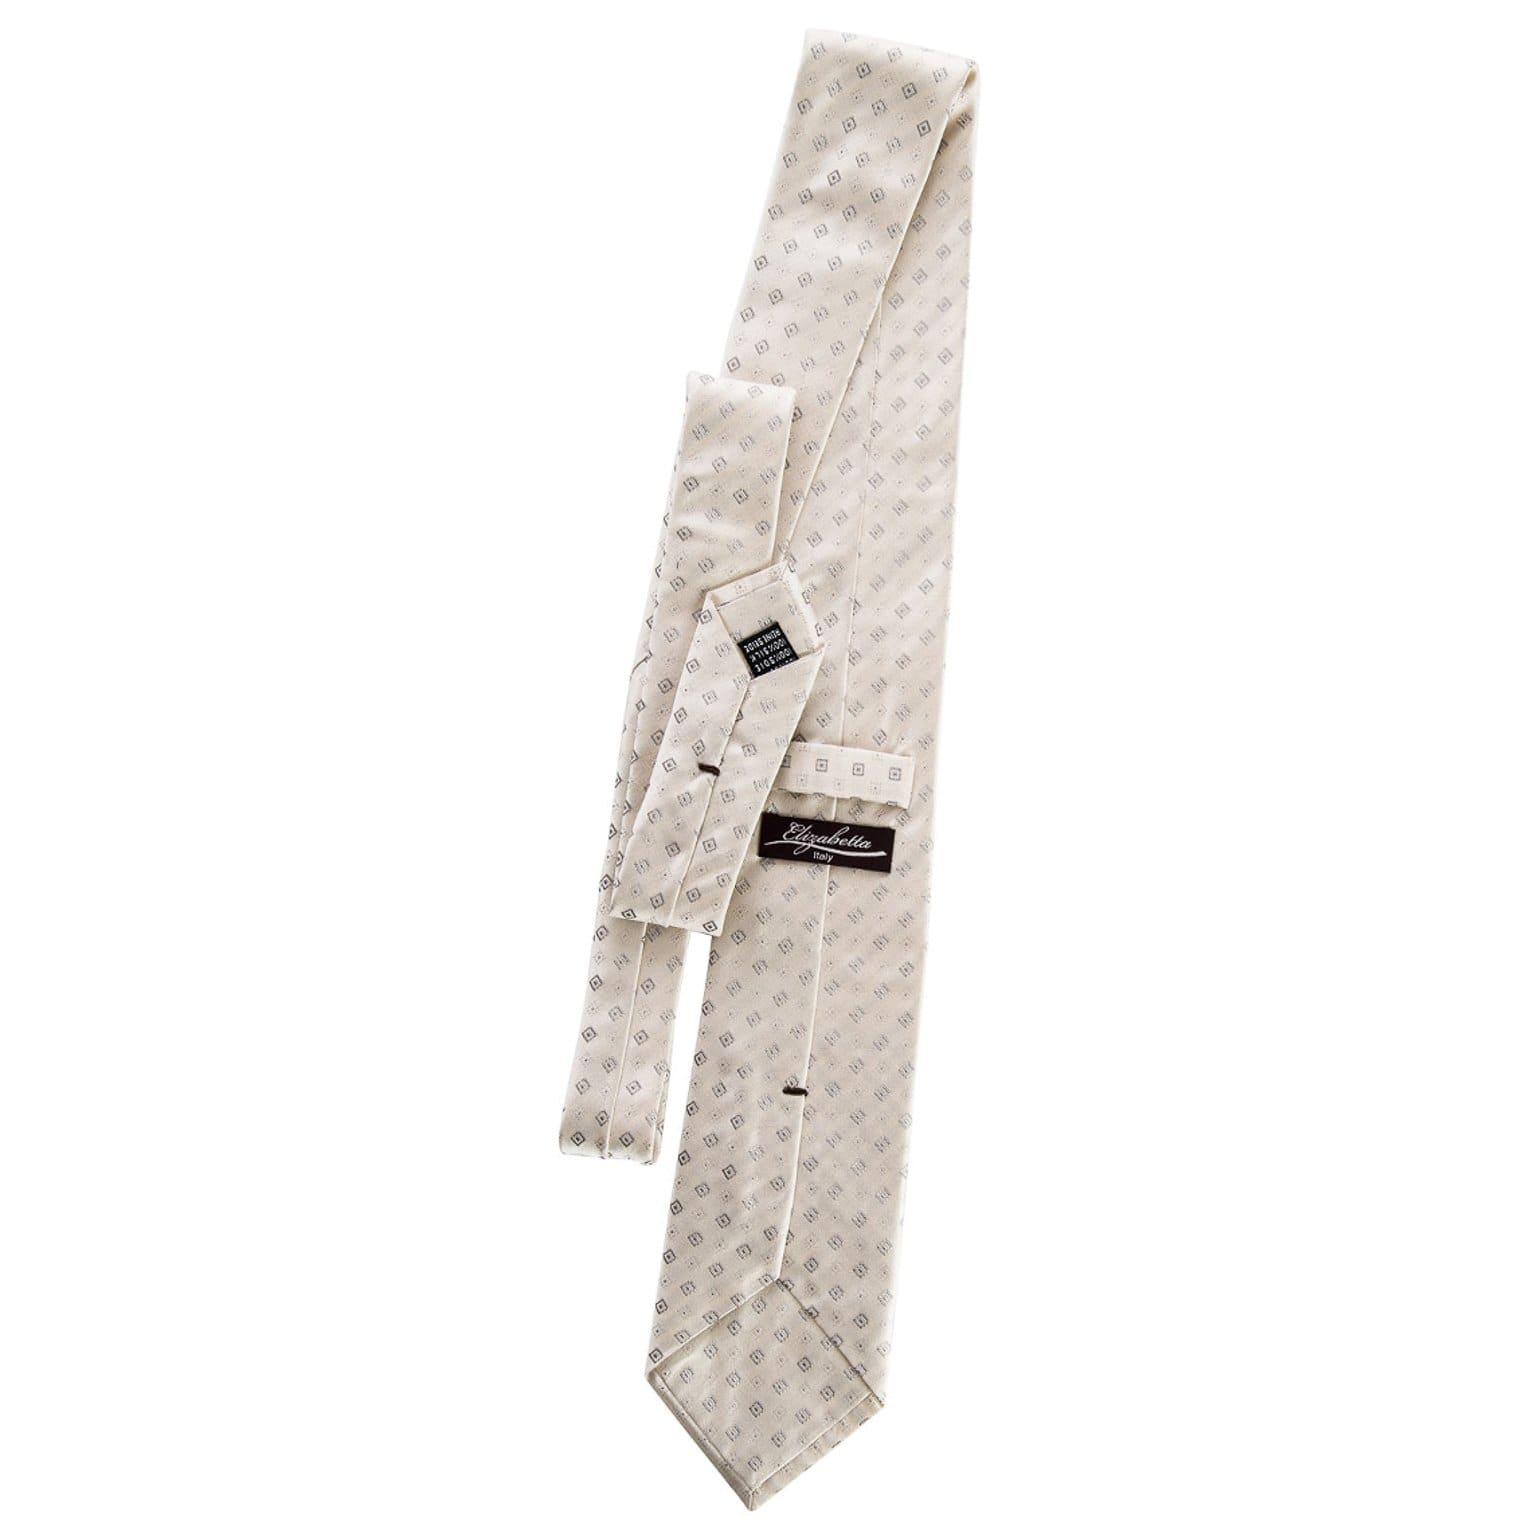 Mens Ivory Silk Tie - Formal - 100% Made in Italy